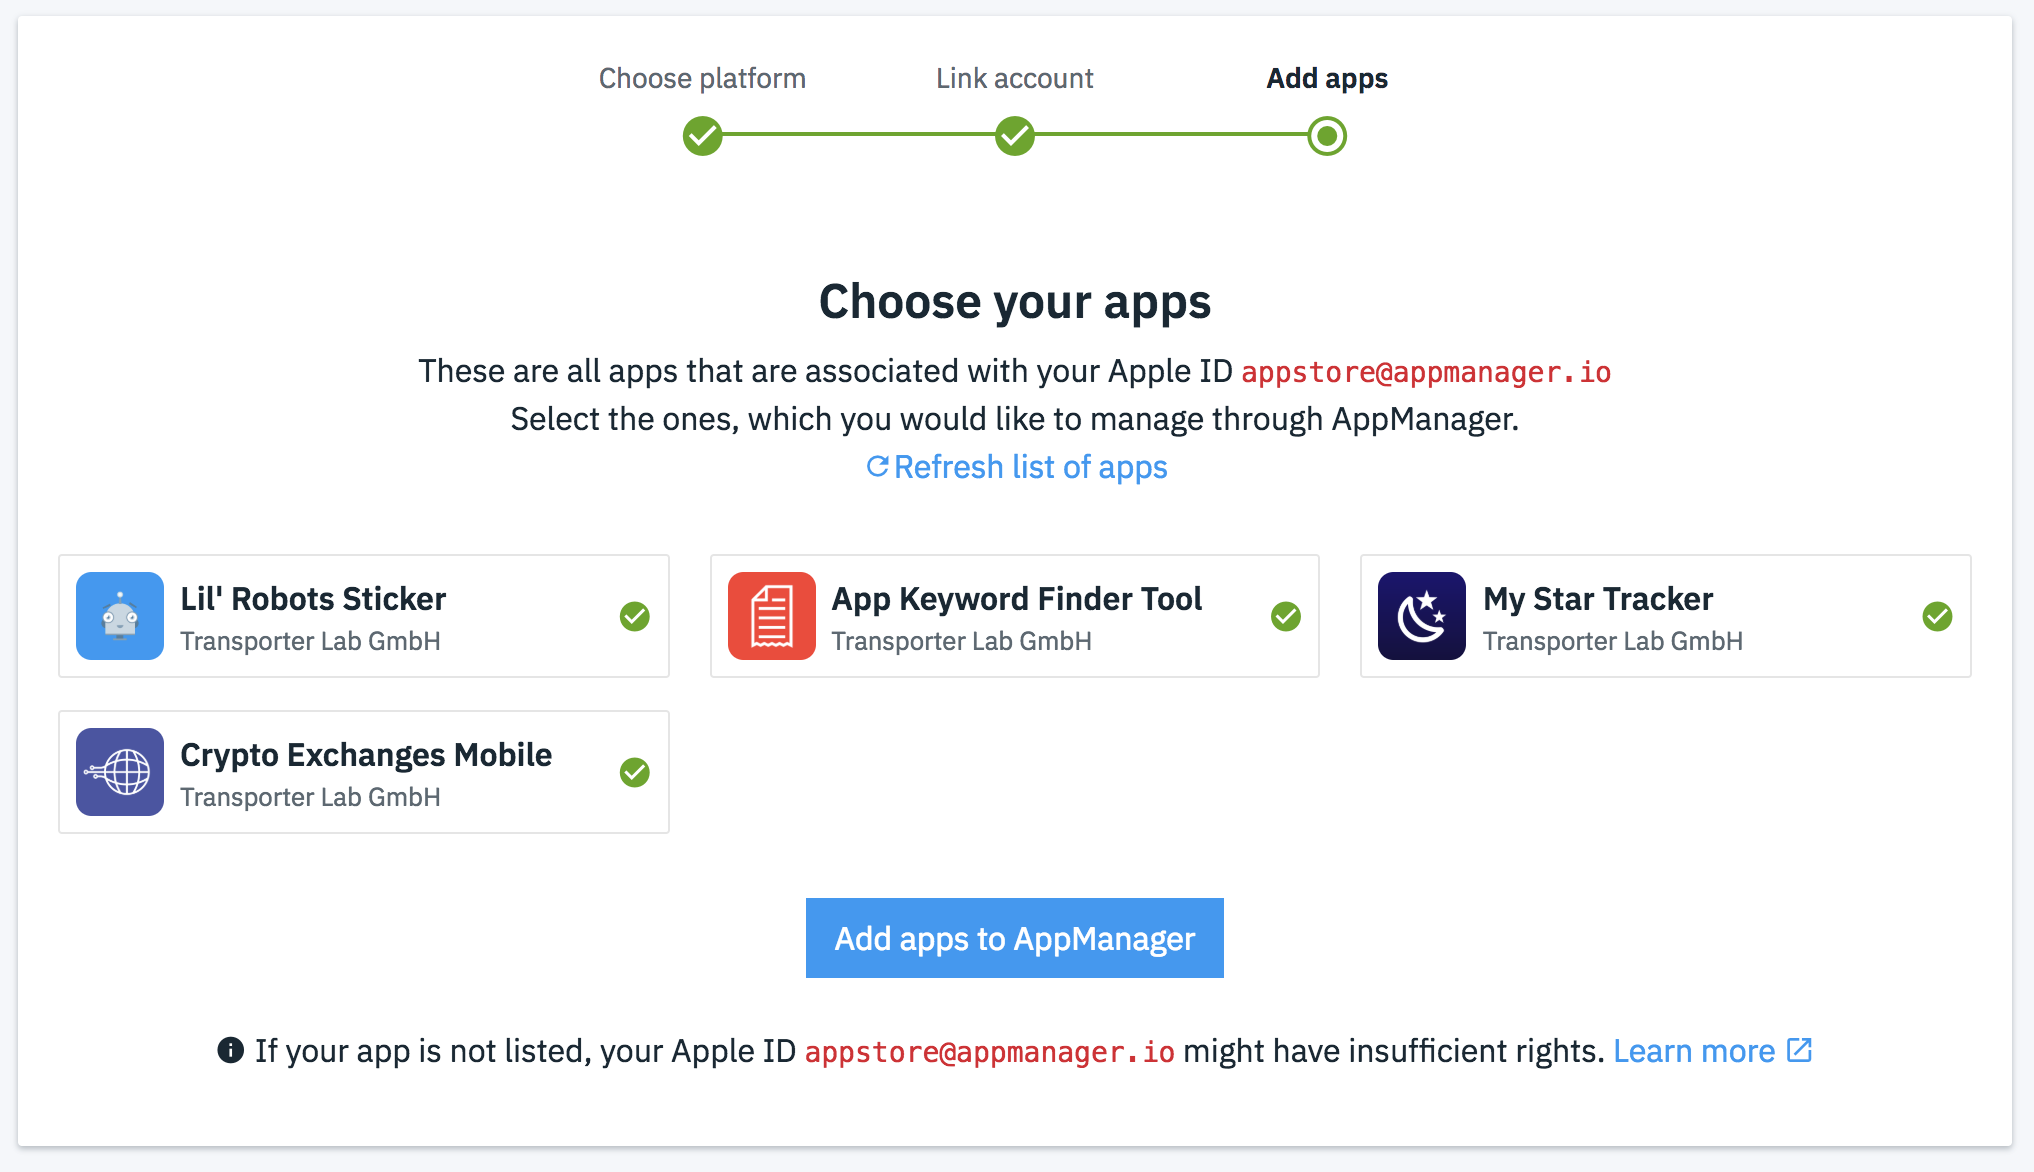 Select the apps you want to manage.